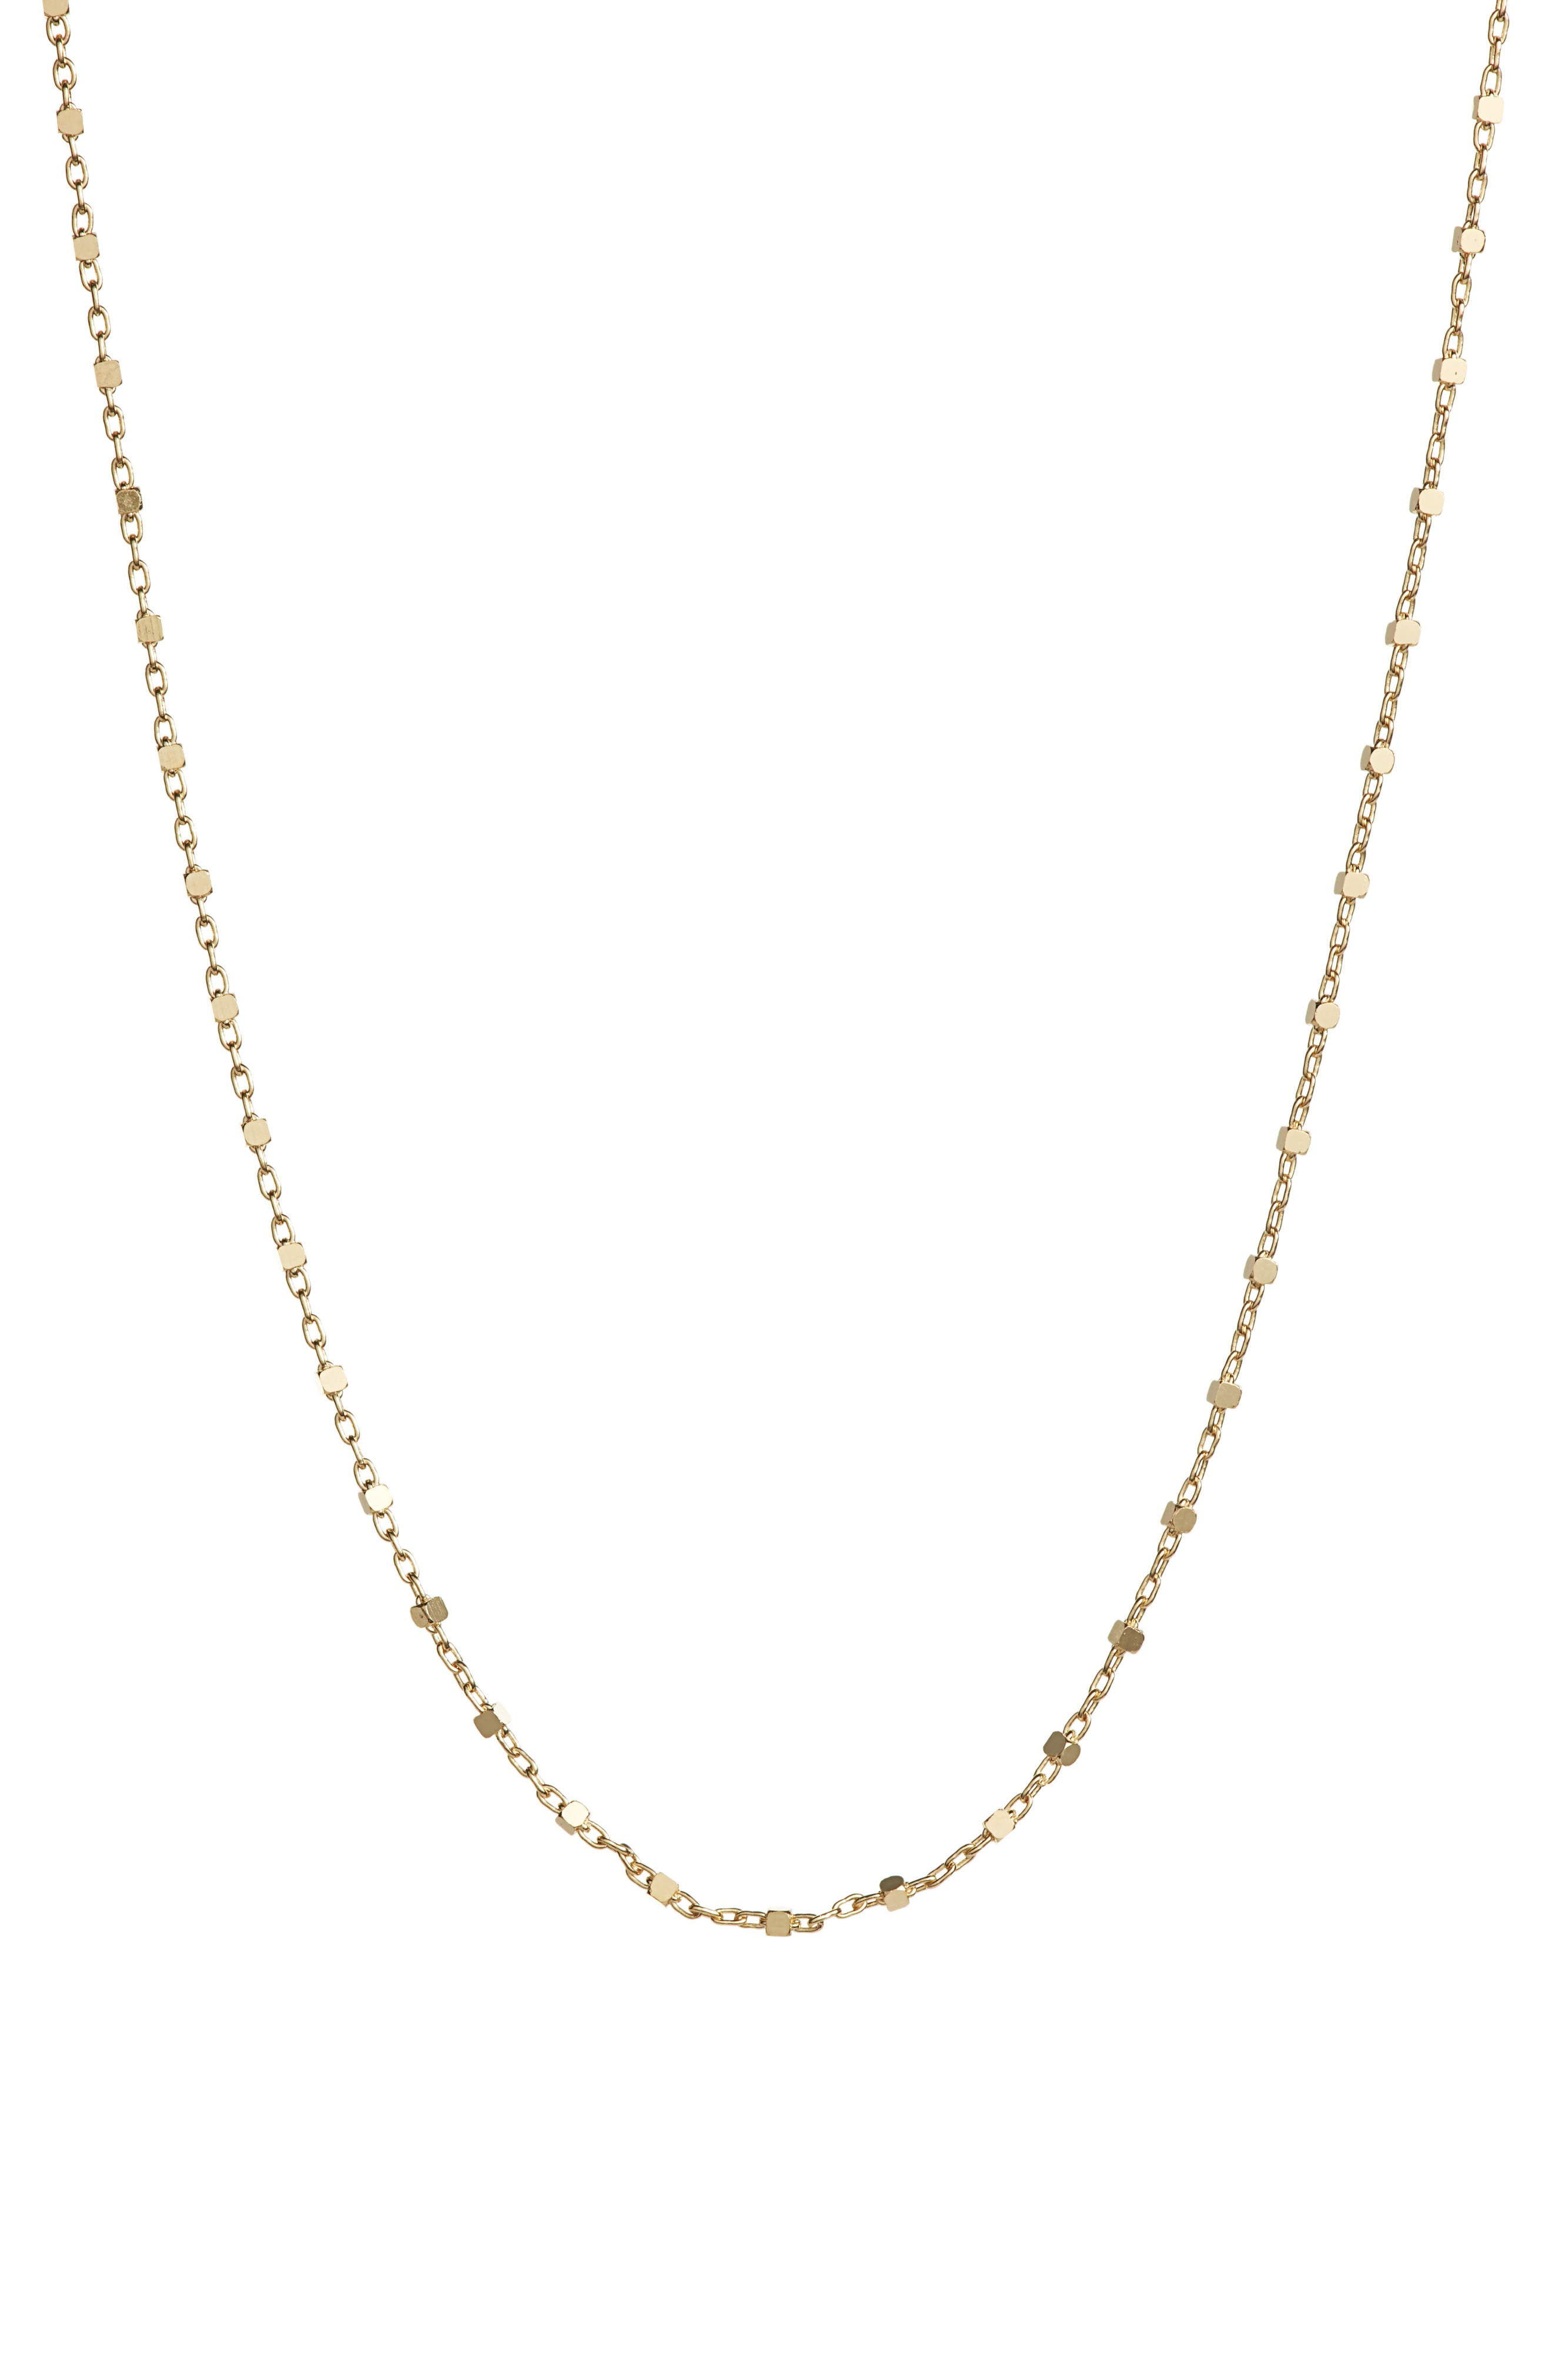 Beaded Chain Necklace,                             Main thumbnail 1, color,                             YELLOW GOLD